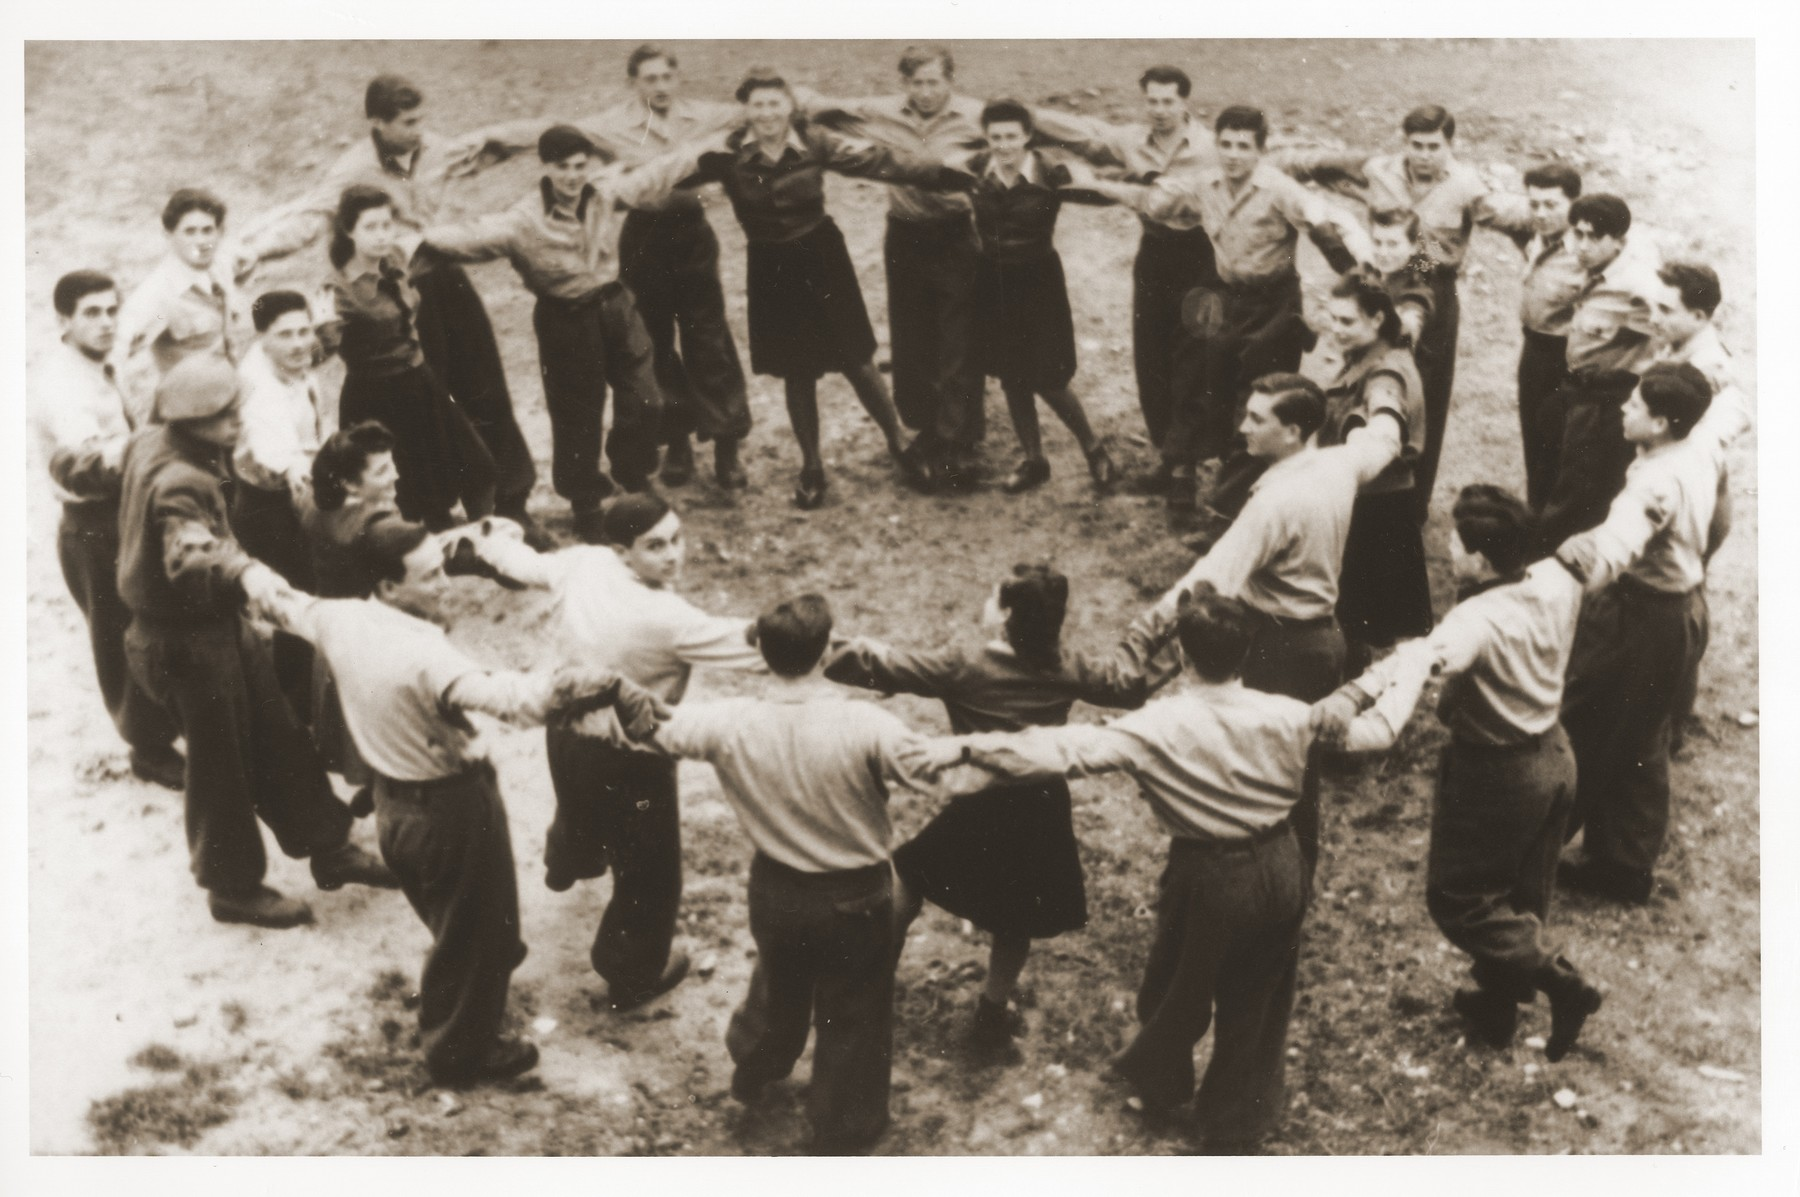 Members of the Kibbutz Hatichiya Nocham hachshara dance a hora in the Foehrenwald displaced persons camp.  Szaja Aron Knobler (now Alex Knobler) is the son of Moszek and Jocheta Knobler.  He was born in 1921 in Bedzin, Poland.  Szaja had three older sisters, Ita, Esther and Leah.  In 1931 the family moved to Chorzow near the German border.  There Szaja became active in the Akiba Zionist youth movement.  In 1938 he joined the Akiba hachshara [agricultural training farm] in Bielsko and made plans to immigrate to Palestine.  His plans were thwarted, however, by the start of World War II.  In the first months of the war Szaja fled to the Soviet sector of Poland, where he explored possible exit routes to Palestine via Romania for the nascent Zionist underground.  During a visit home in 1940 Szaja was caught up in the forced resettlement of his family to the Sosnowiec ghetto.  From Sosnowiec Szaja was deported to the Blechhammer labor camp, where he remained until the camp was evacuated in January 1945.  During the forced march out of the camp Szaja ran away with two friends.  German guards shot and killed his friends but Szaja escaped.  Posing as a Polish laborer, Szaja found refuge with a German farmer in Gleiwitz until liberation.  After the war Szaja, who was the sole survivor of his immediate family, took a leading role in the setting up of Zionist collectives in Poland.  He also was active in the Bricha and Aliyah Bet [illegal immigration to Palestine] movement.  This activity led to his arrest in Sosnowiec by the NKVD.  Following his release from prison, Szaja left Poland for Germany.  During the summer of 1945 Szaja organized Zionist activities at the Foehrenwald displaced persons camp.  In October he moved on to the Bergen-Belsen DP camp, where he joined a group of 400 would-be immigrants to Palestine.  The group sailed aboard the Tel Hai from Marseilles in March 1946.  When the ship reached Palestine, it was intercepted by the British and its passengers interned